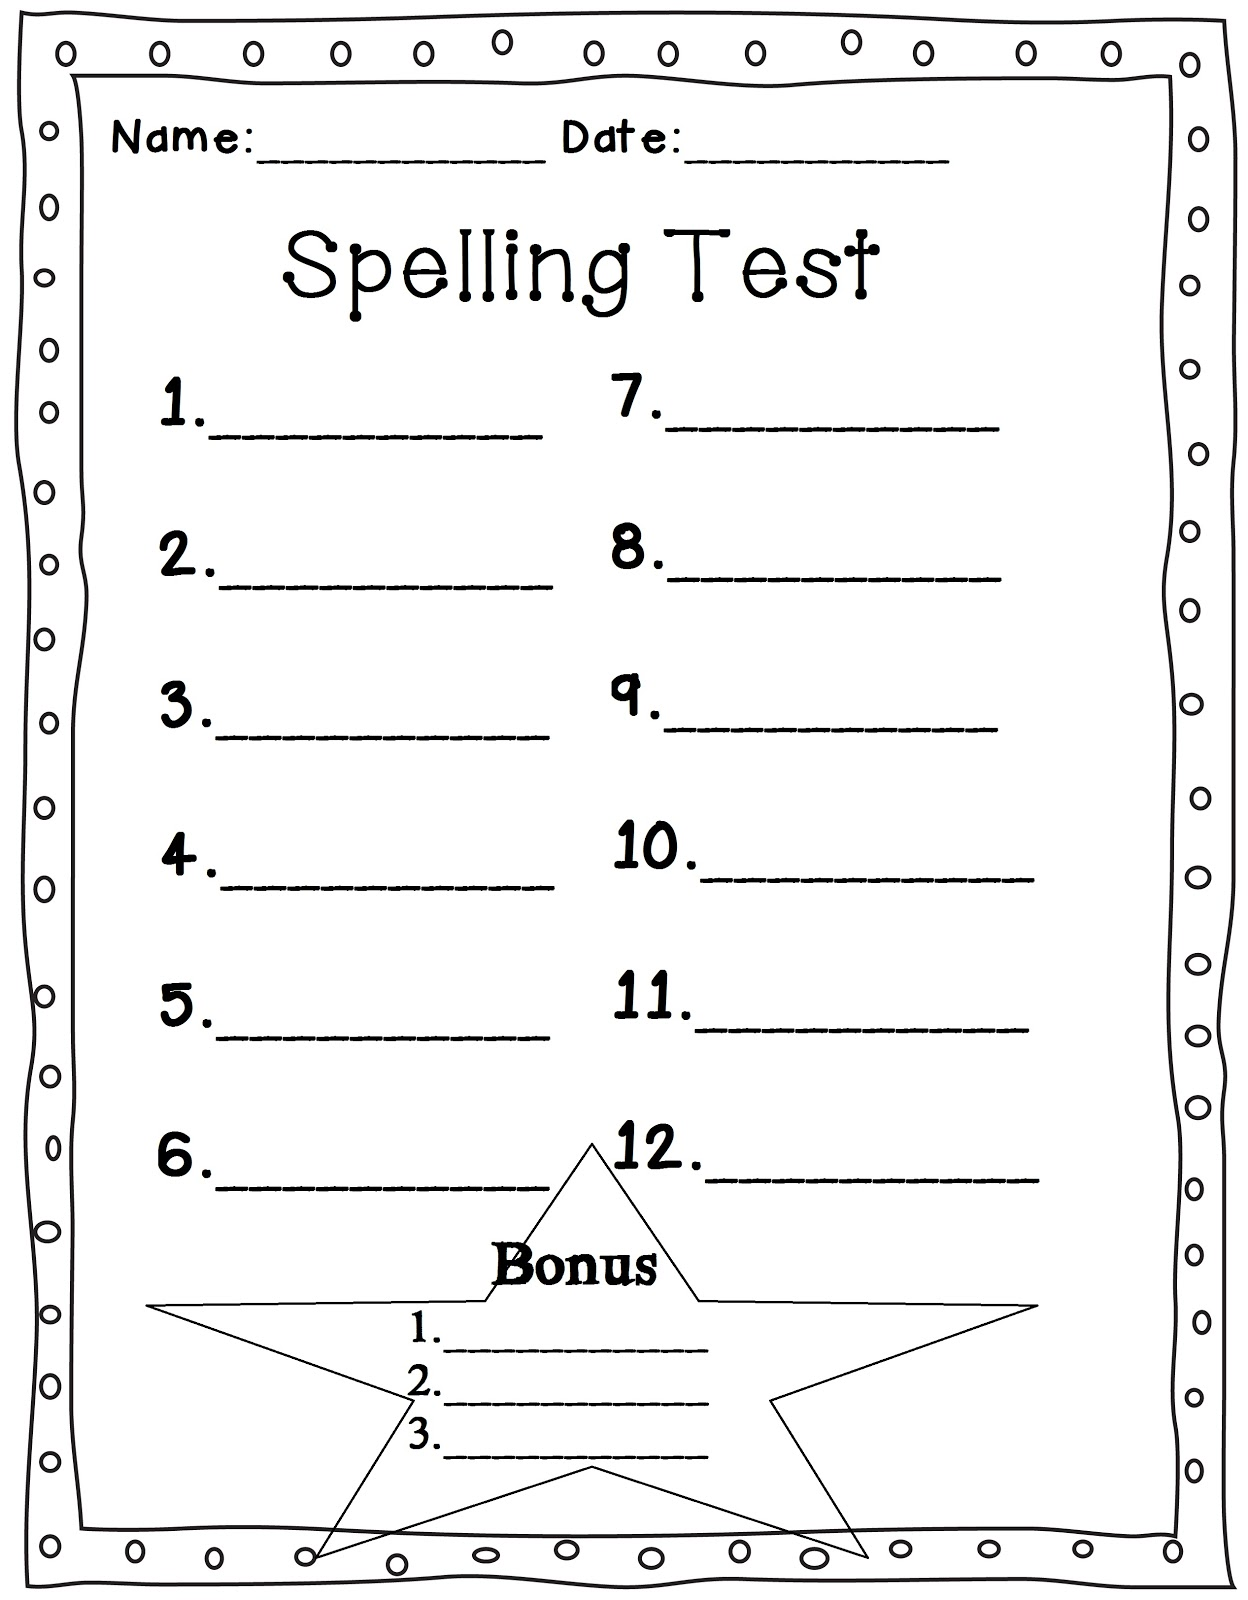 lausd lesson plan template - spelling words for 1st grade search results calendar 2015